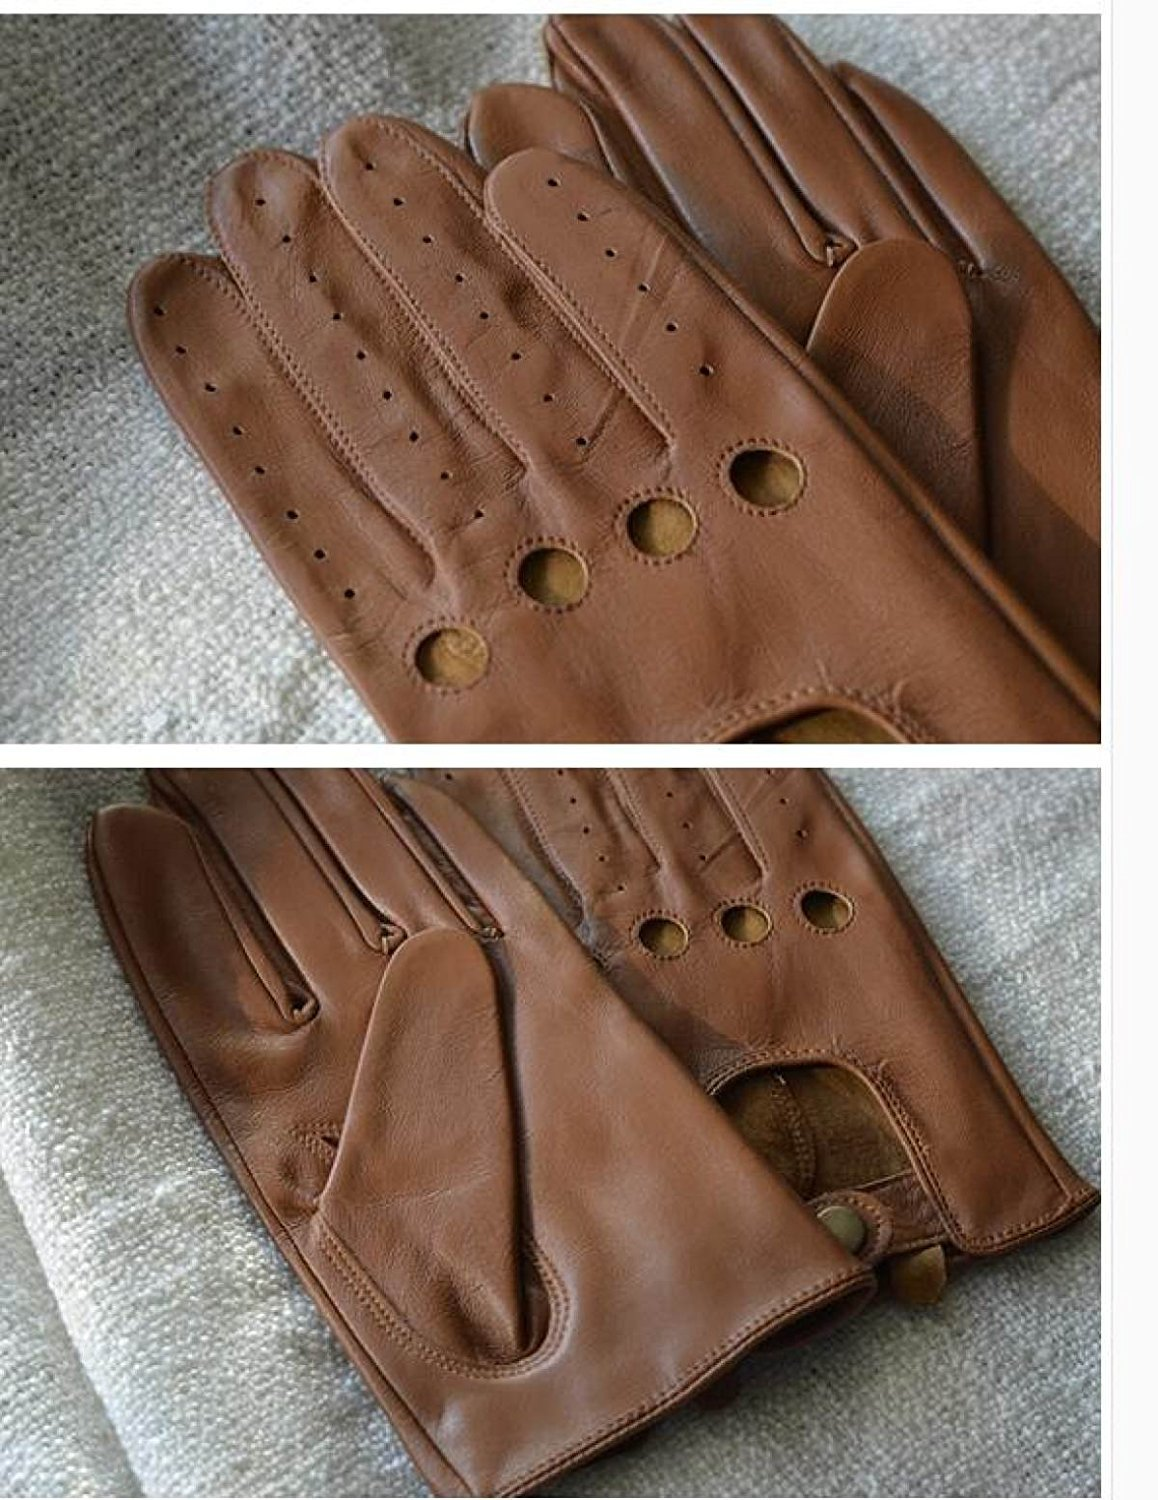 HOMEE Men'S Leather Drives Gloves Thin Repair Design Leakage Four Seasons Available,Brown,Medium by HOMEE (Image #2)